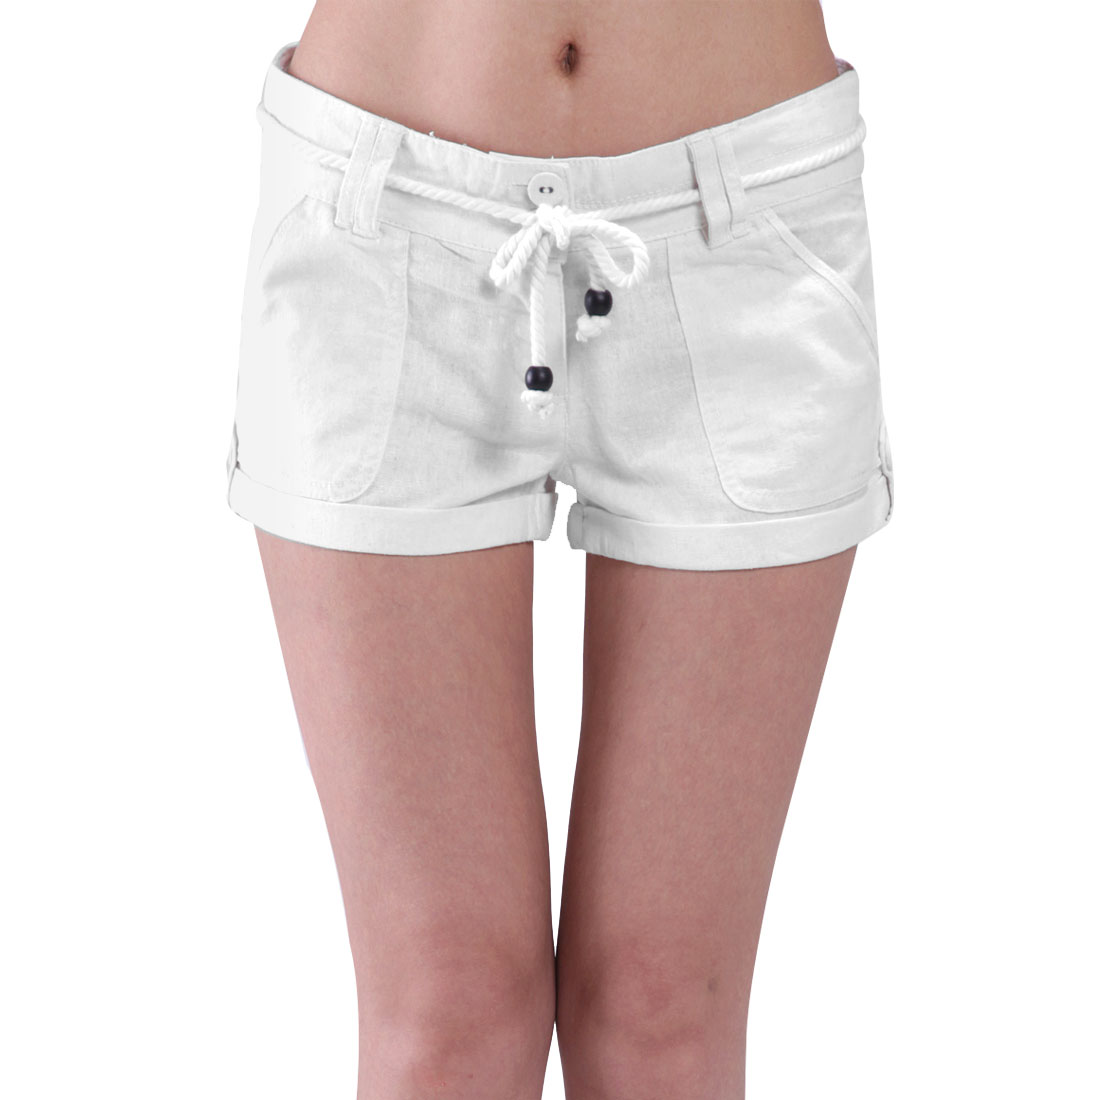 Woman Solid White Charming Belt Loop Button Closure Zip Shorts Trousers XL